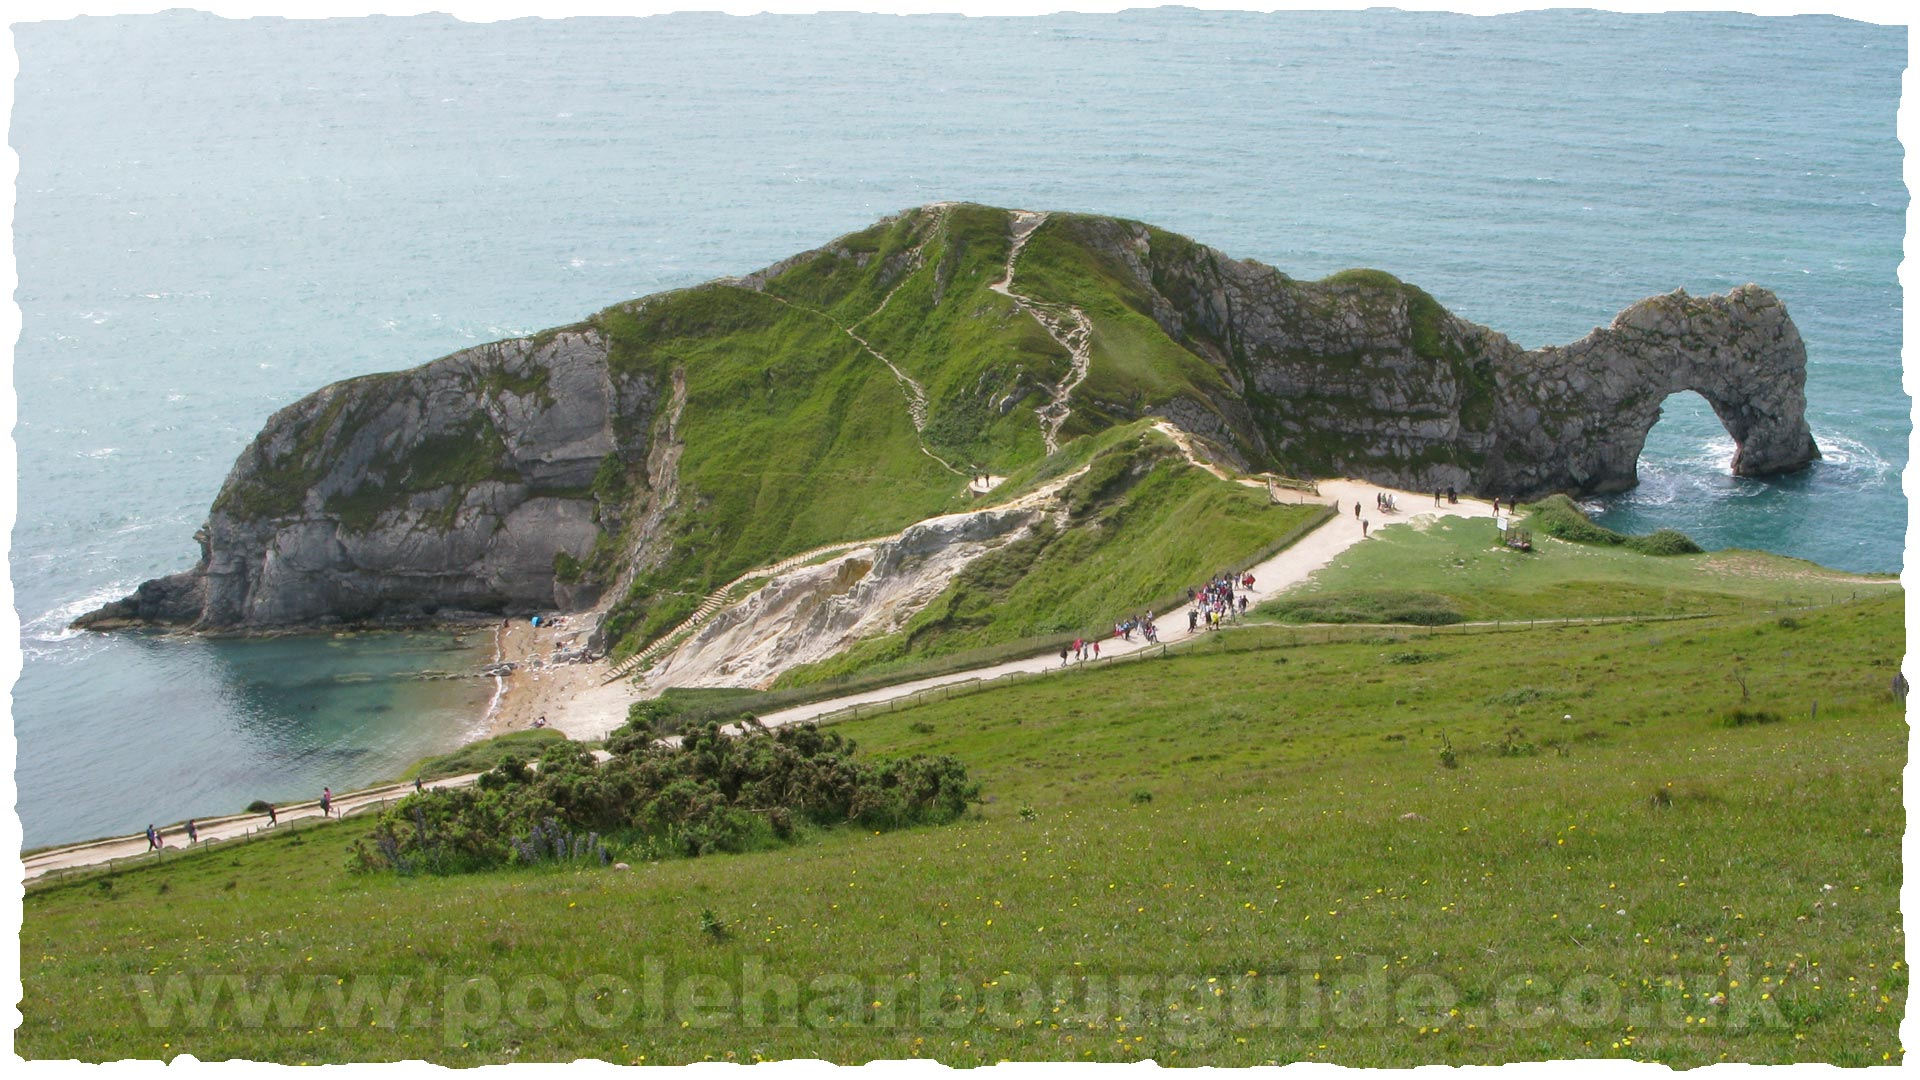 Durdle Door Jurassic Icon Dorset England HD desktop wallpaper 1920×1080 & Durdle Door Beach (66 Wallpapers) \u2013 Free Wallpapers